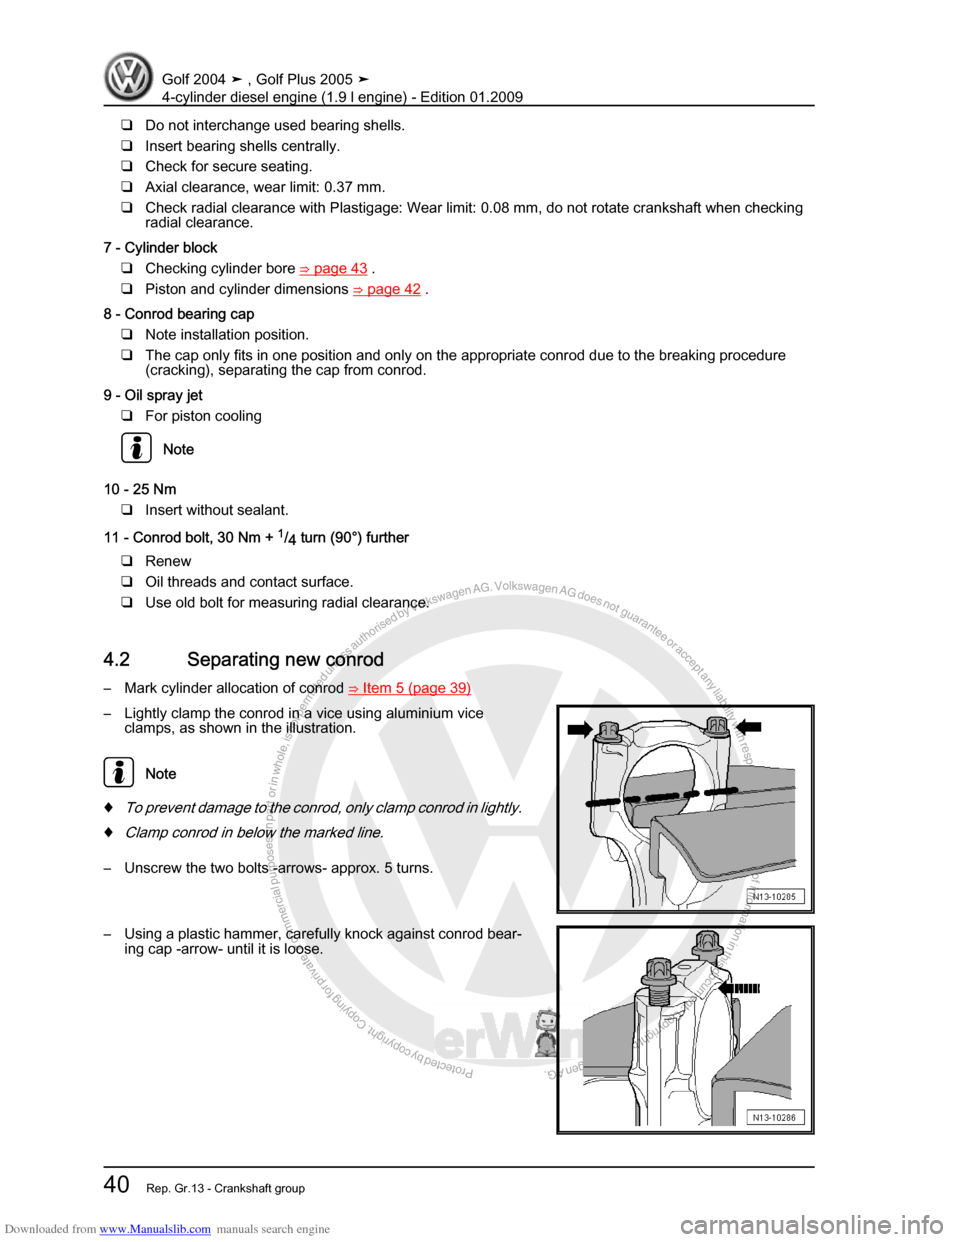 Vw T5 Workshop Manual Free Download Auto Electrical Wiring Diagram 2006 Chevy Colorado Factory Audio Related With